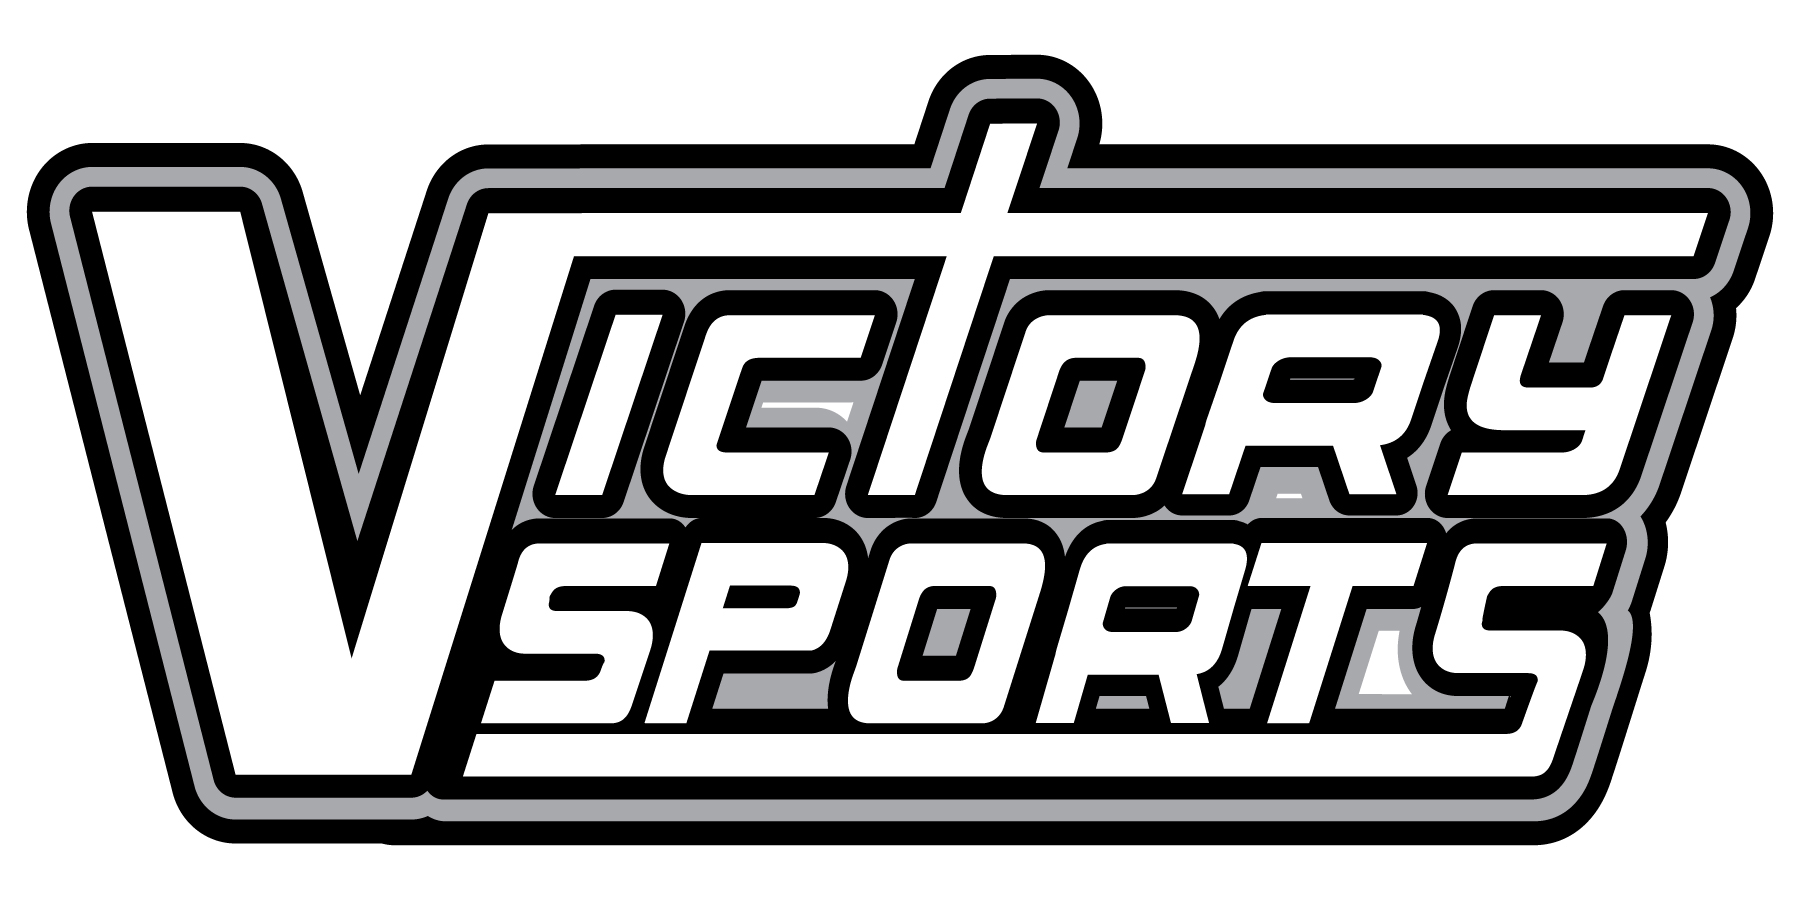 VICTORY SPORTS GLOBAL OUTREACH INC.